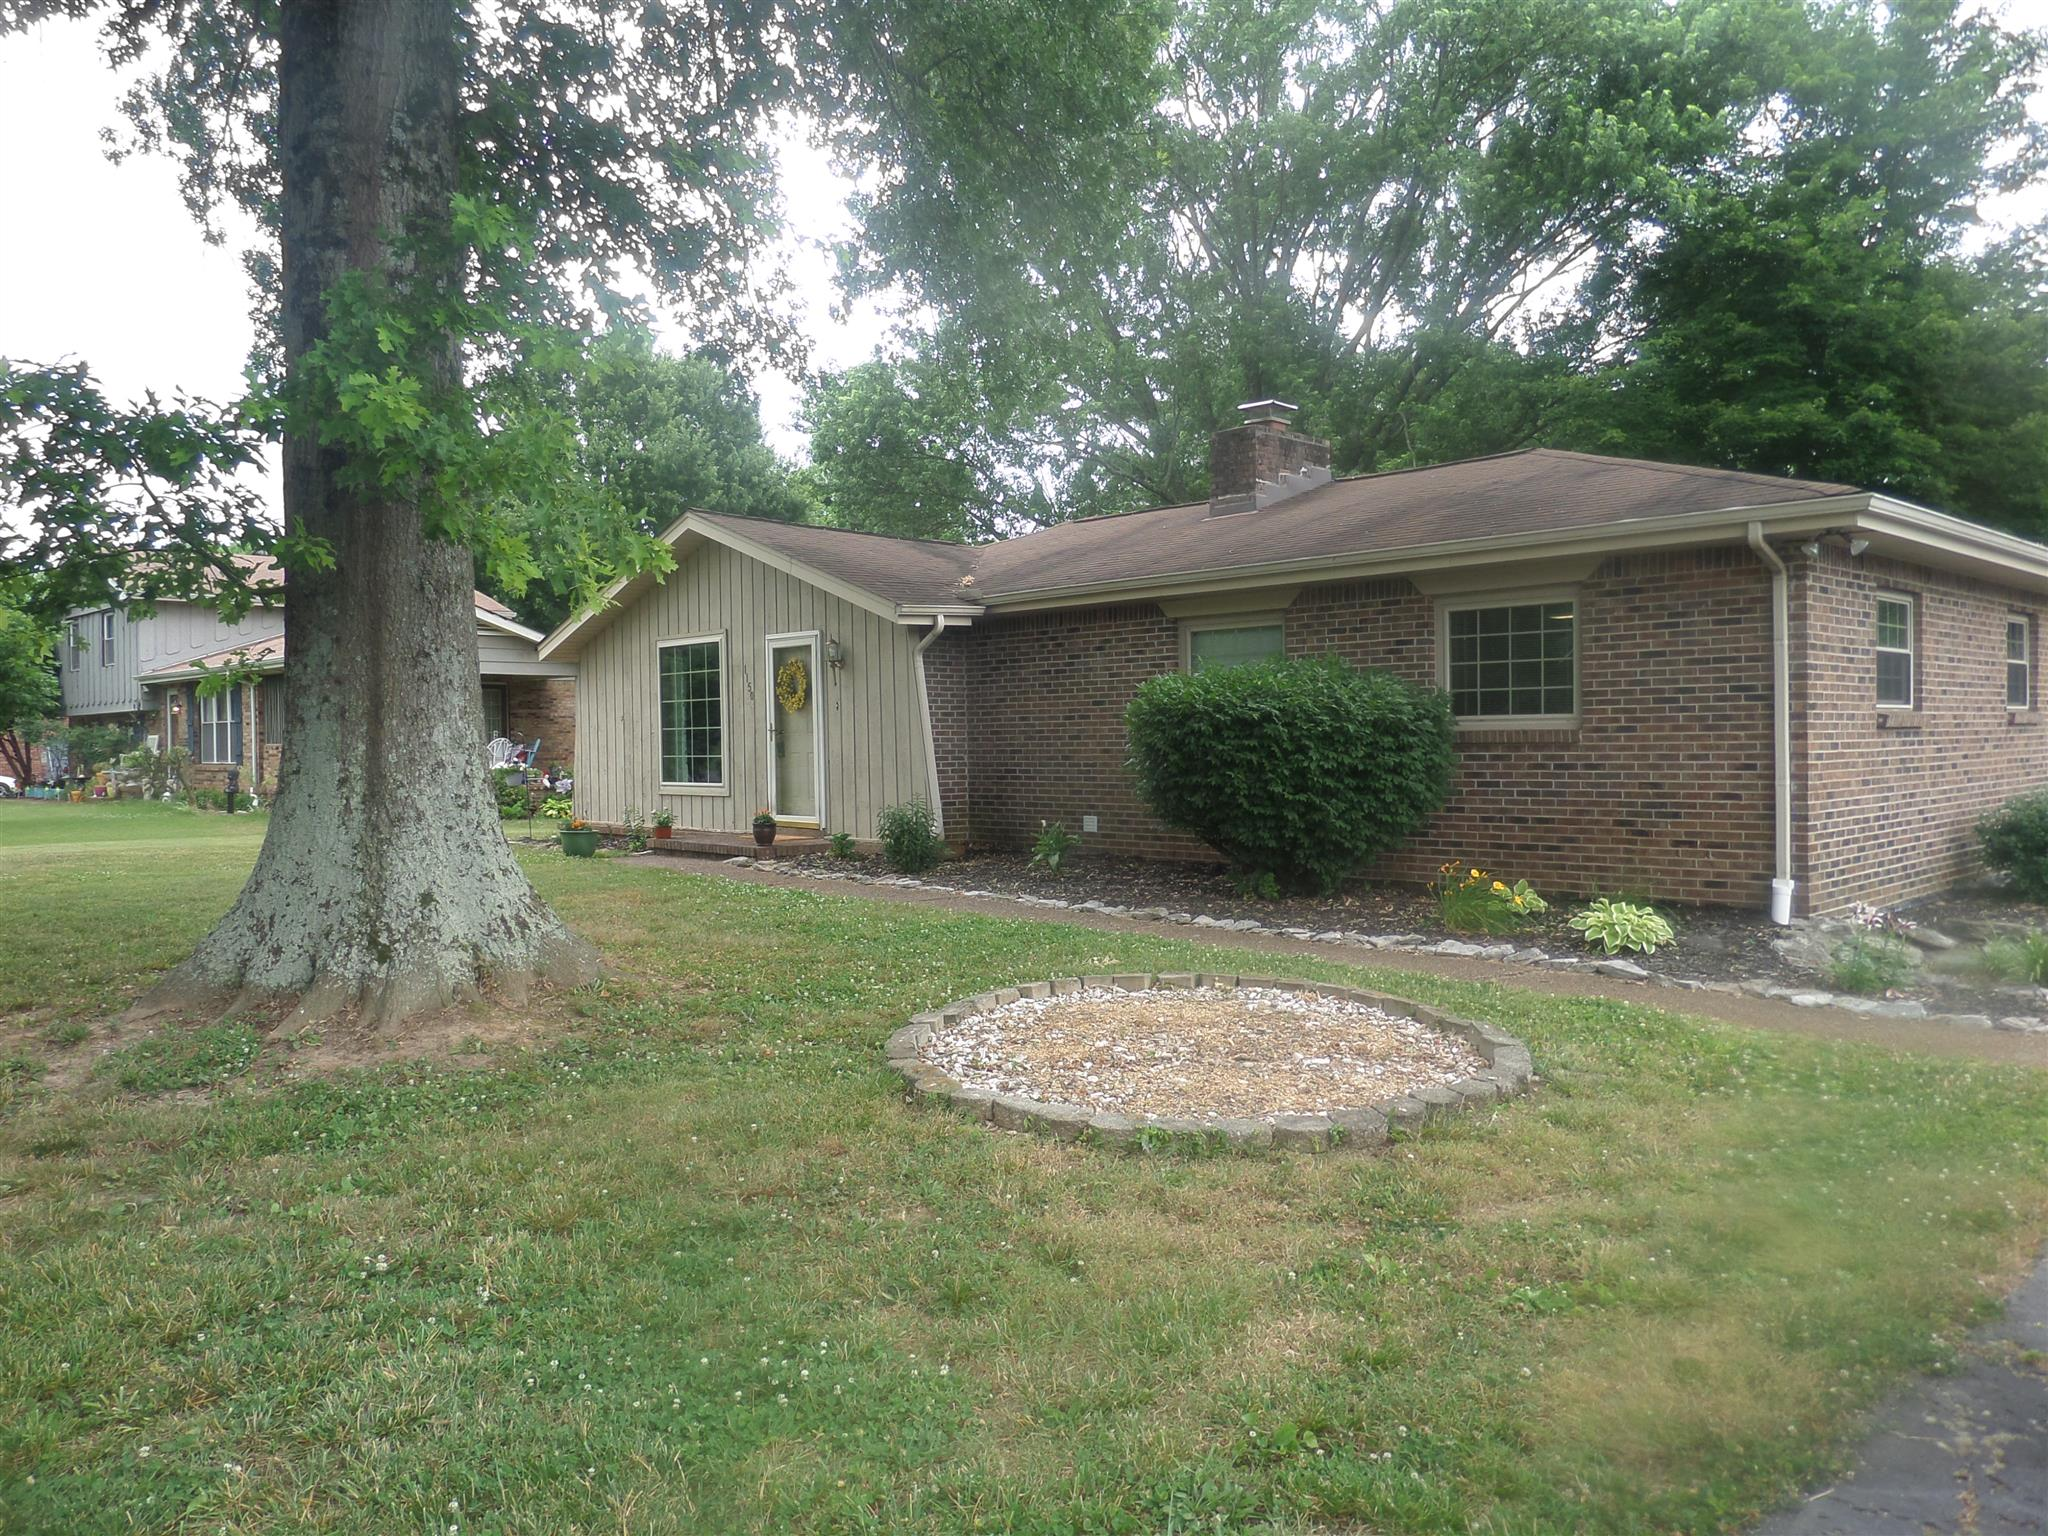 1150 Woodvale Dr, Gallatin in Sumner County County, TN 37066 Home for Sale